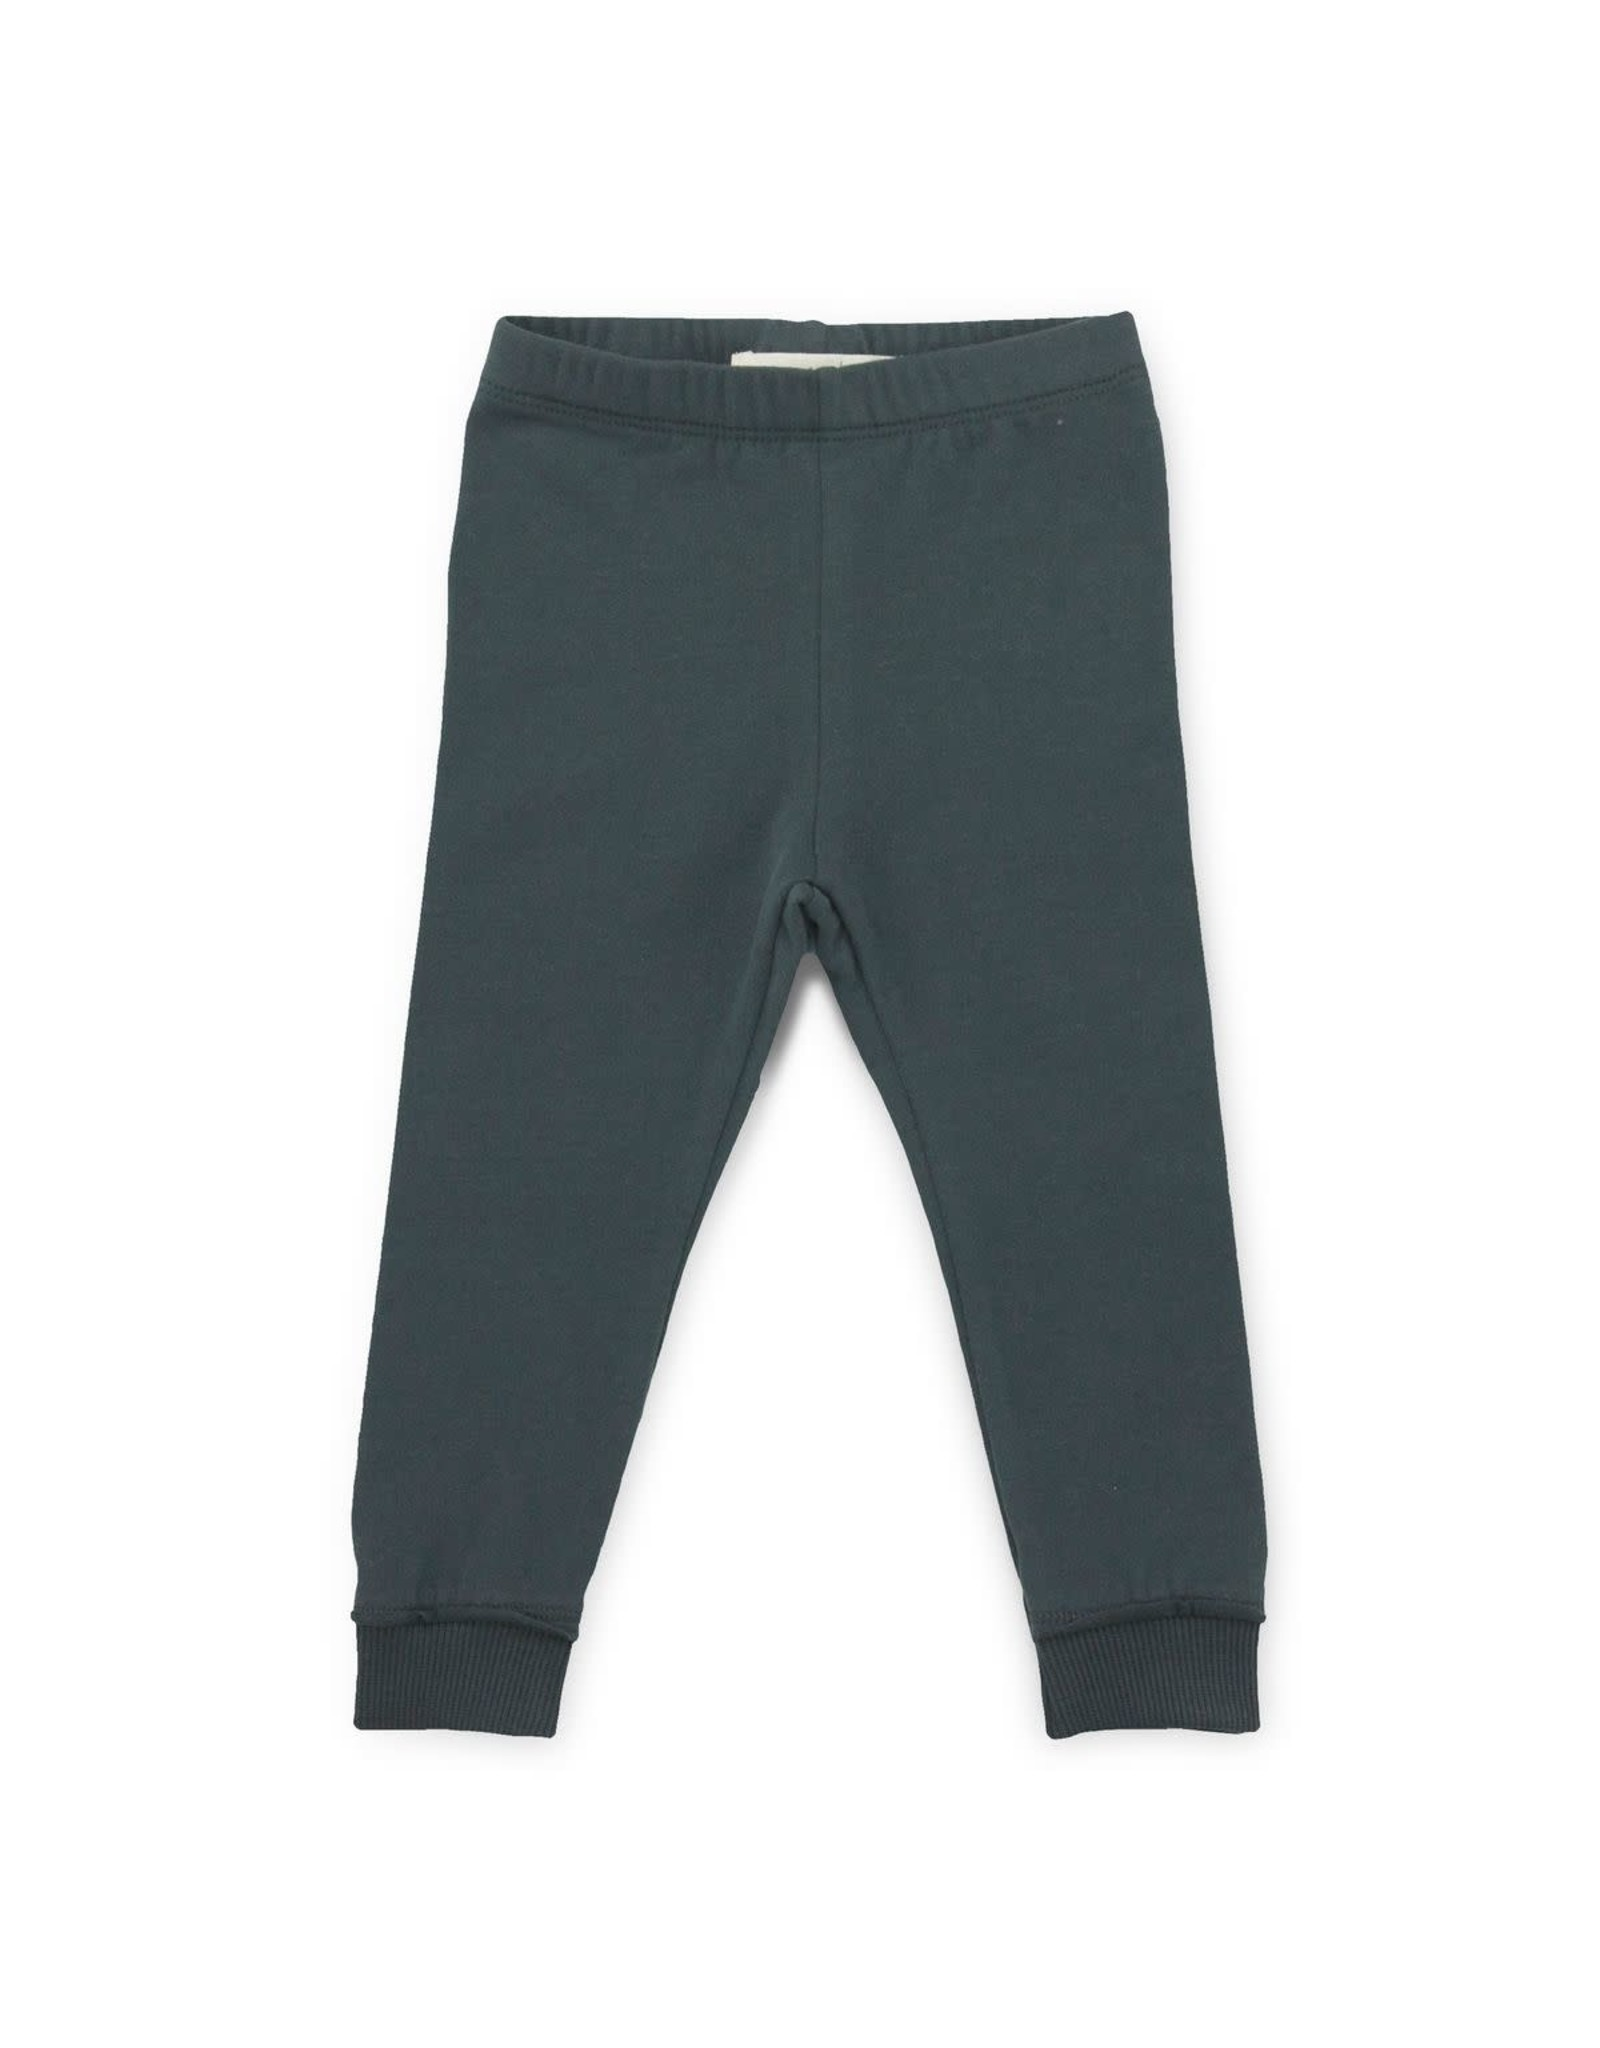 BabyClic charcoal leggings